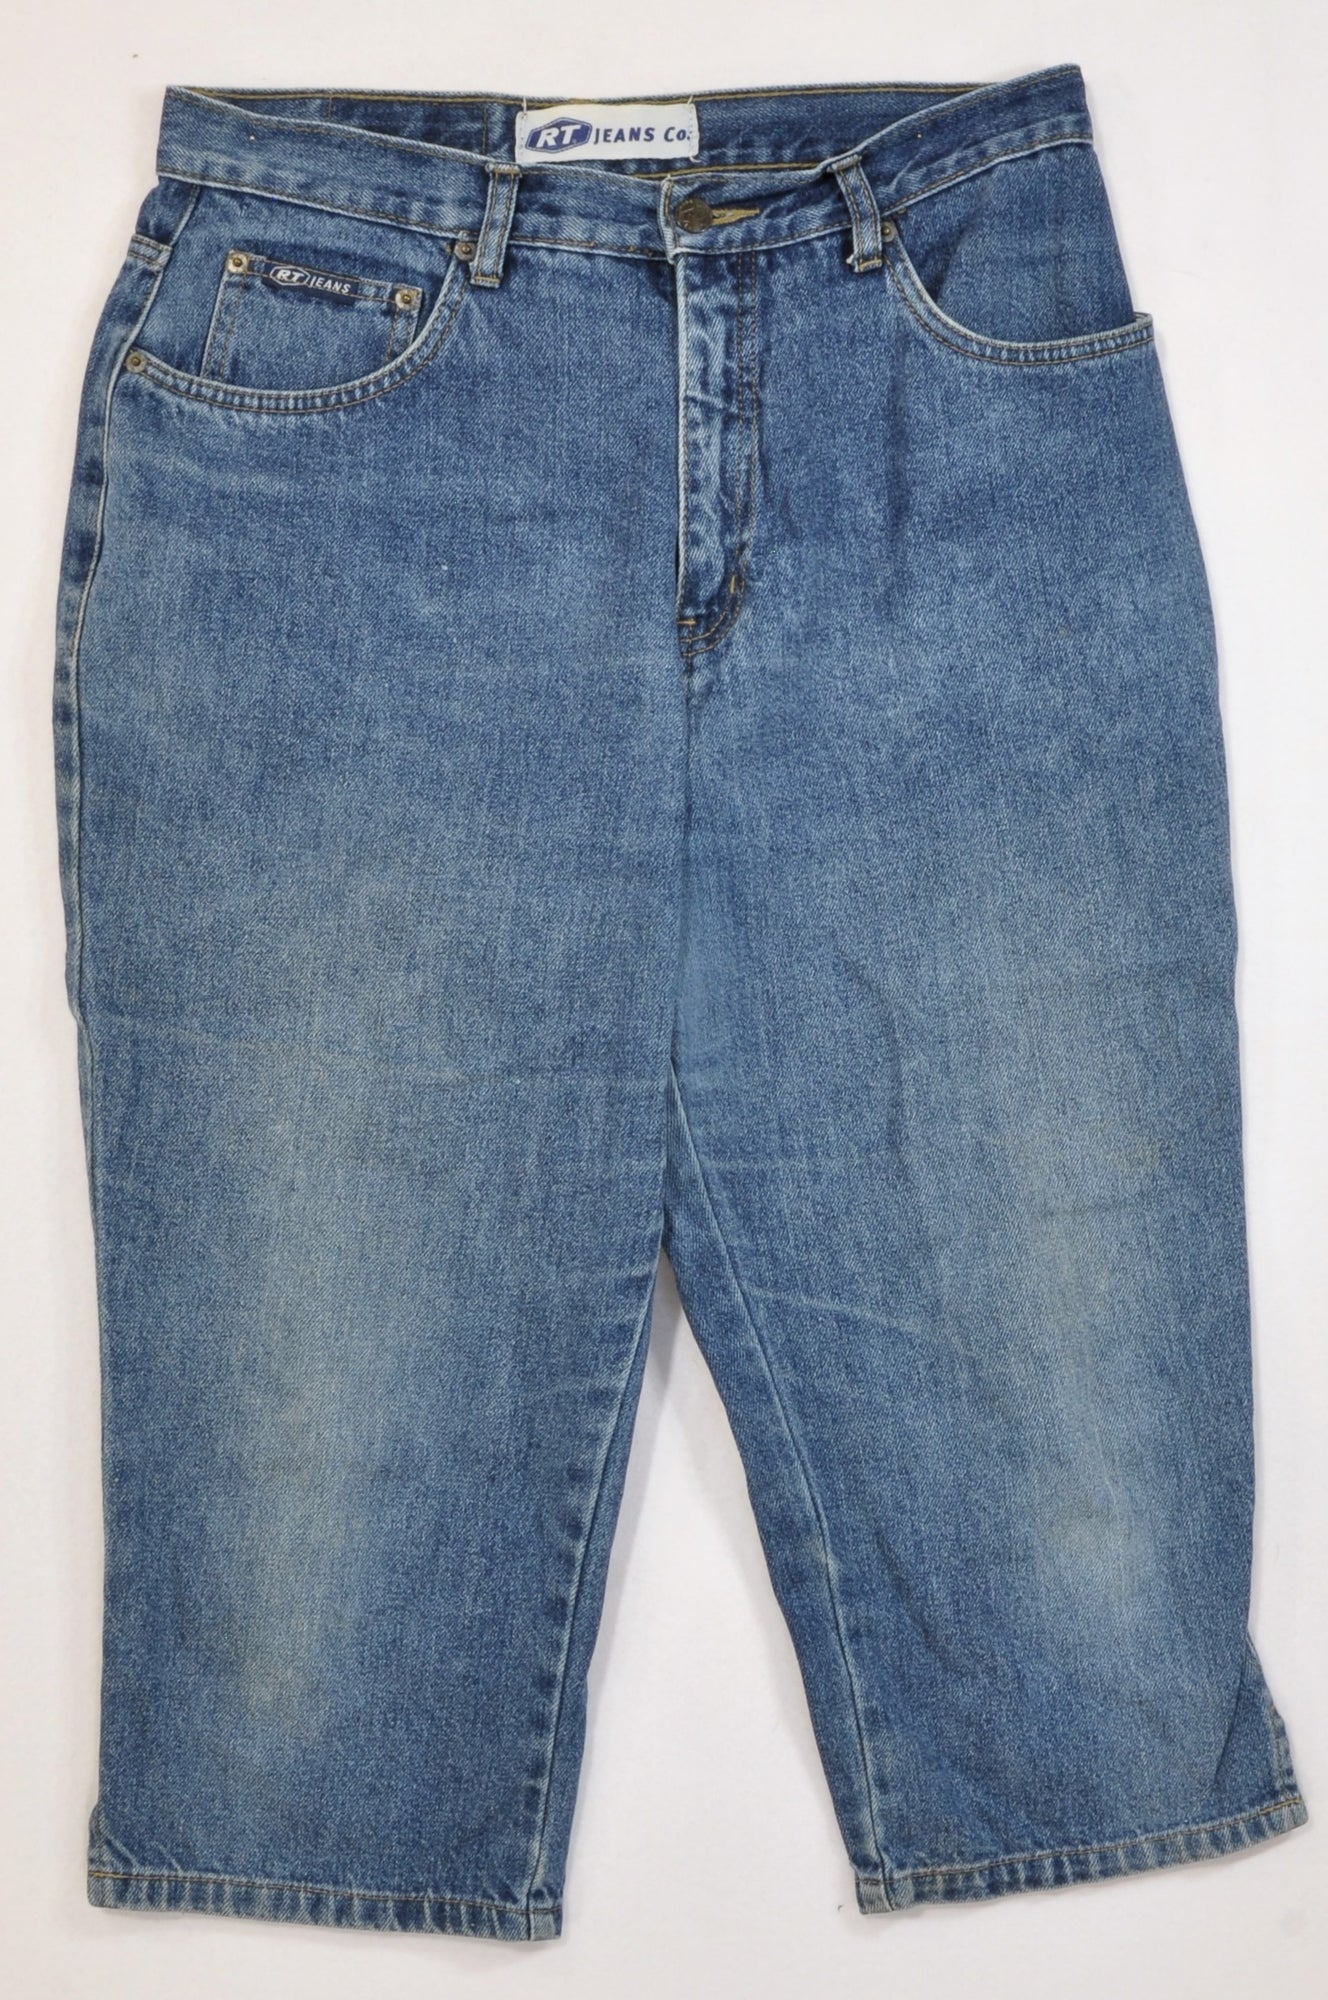 RT Jeans Stone Washed Three Quarter Jeans Women Size 38